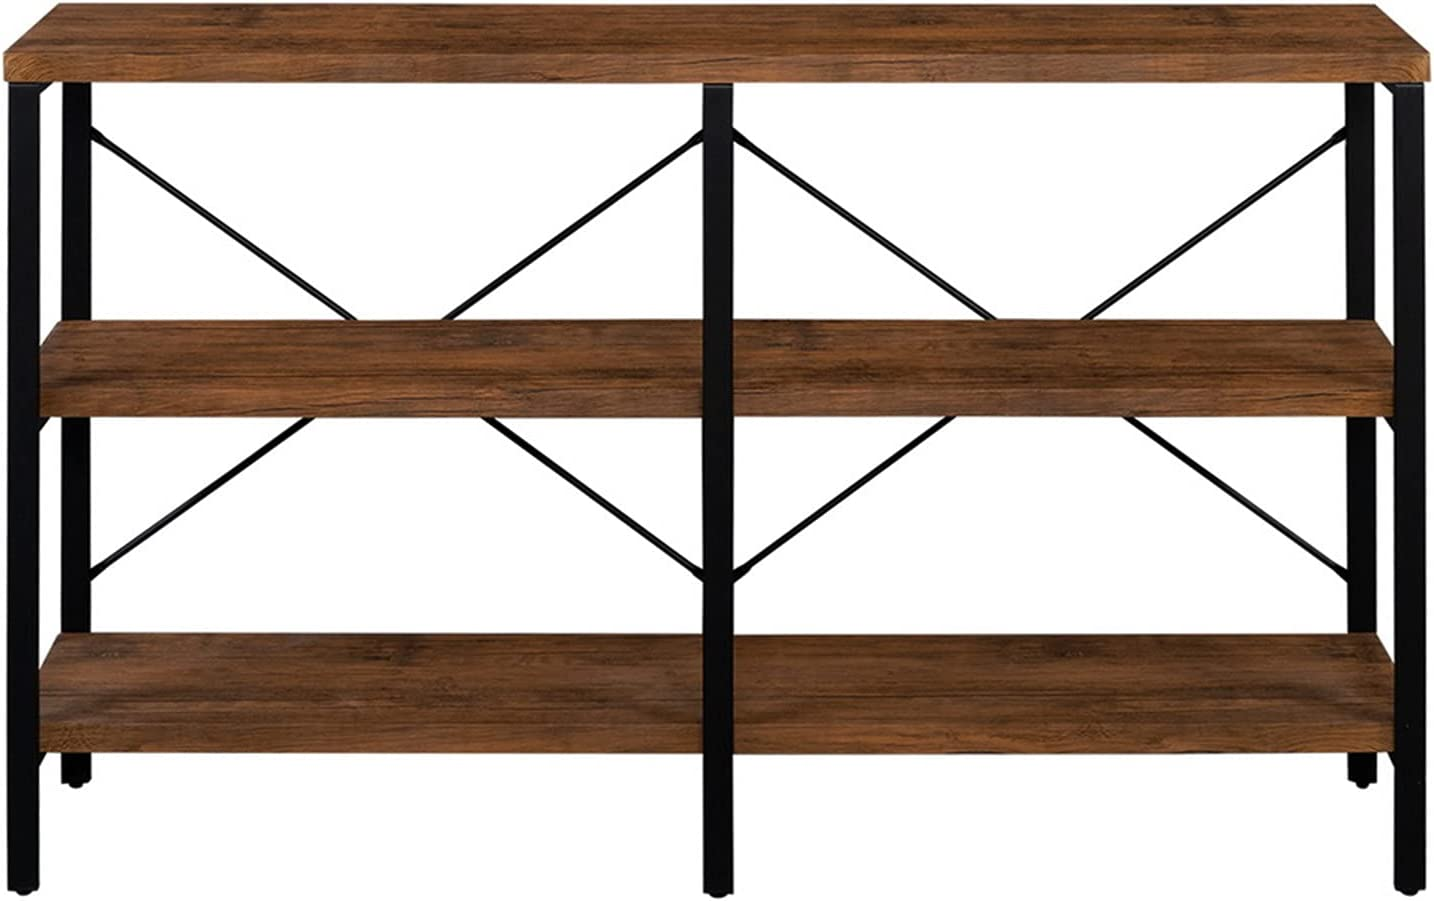 Bysesion GT1-JL 3-Tier Console Super Max 85% OFF Special SALE held Sofa Tabl Industrial Table Foyer